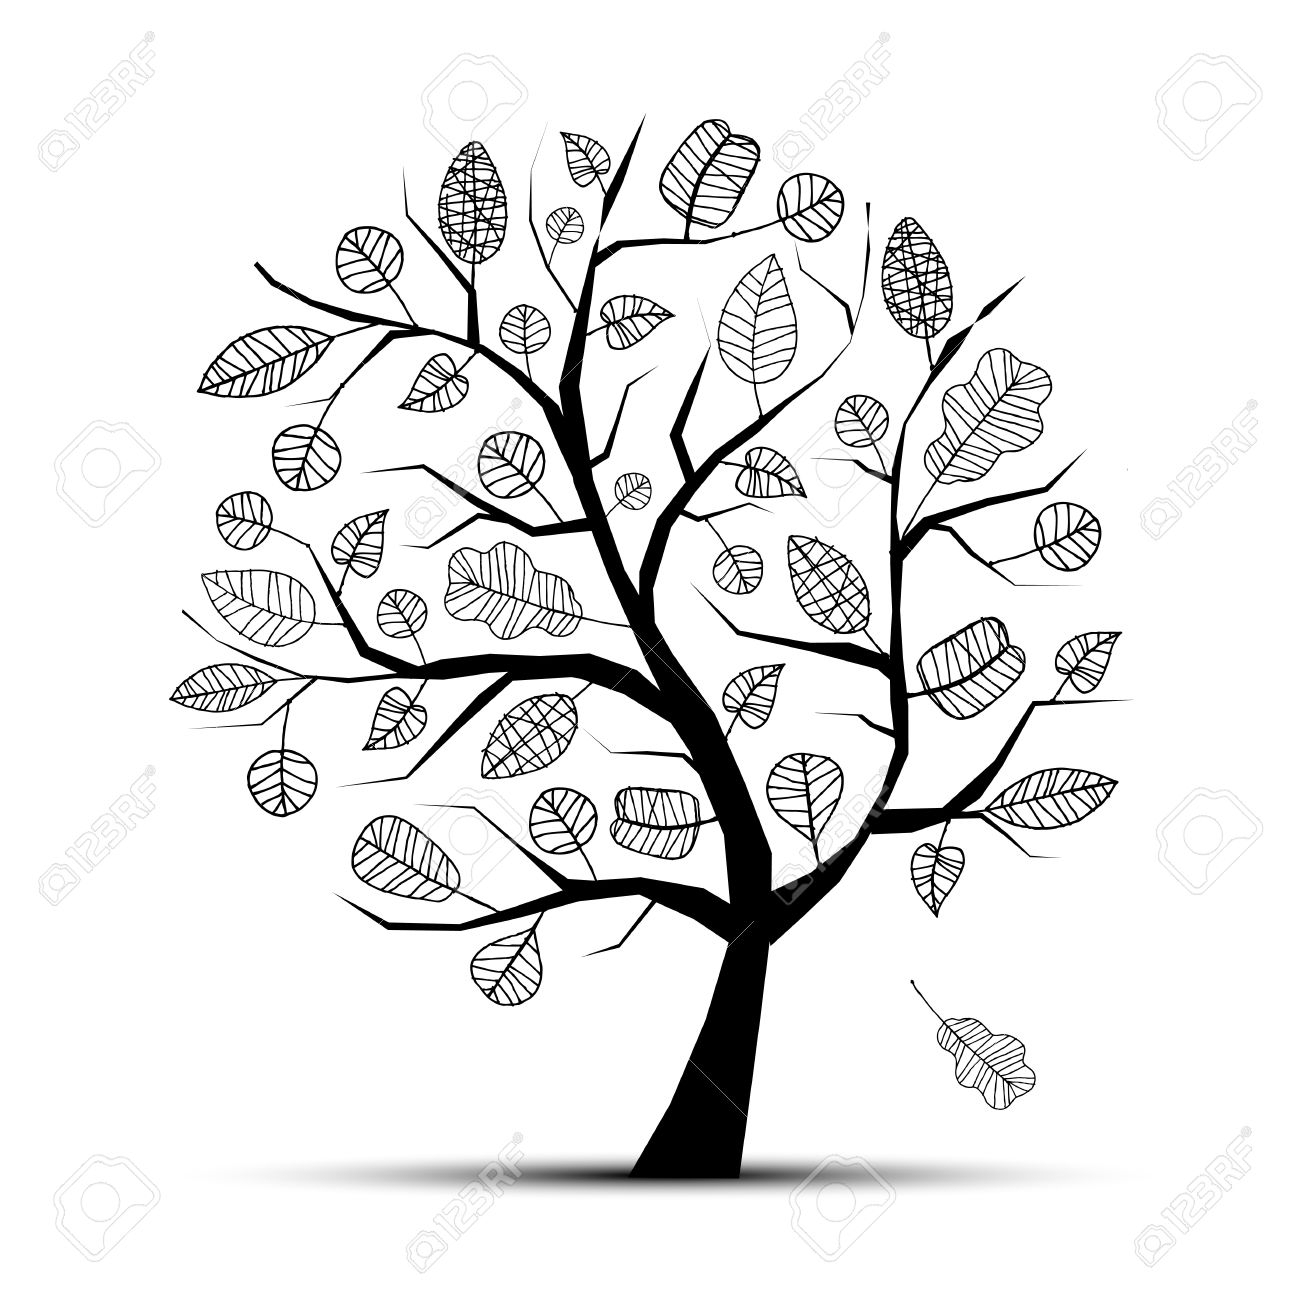 tree drawing outline at getdrawings com free for personal use tree drawing outline of your choice african american clip art women african american clip art church